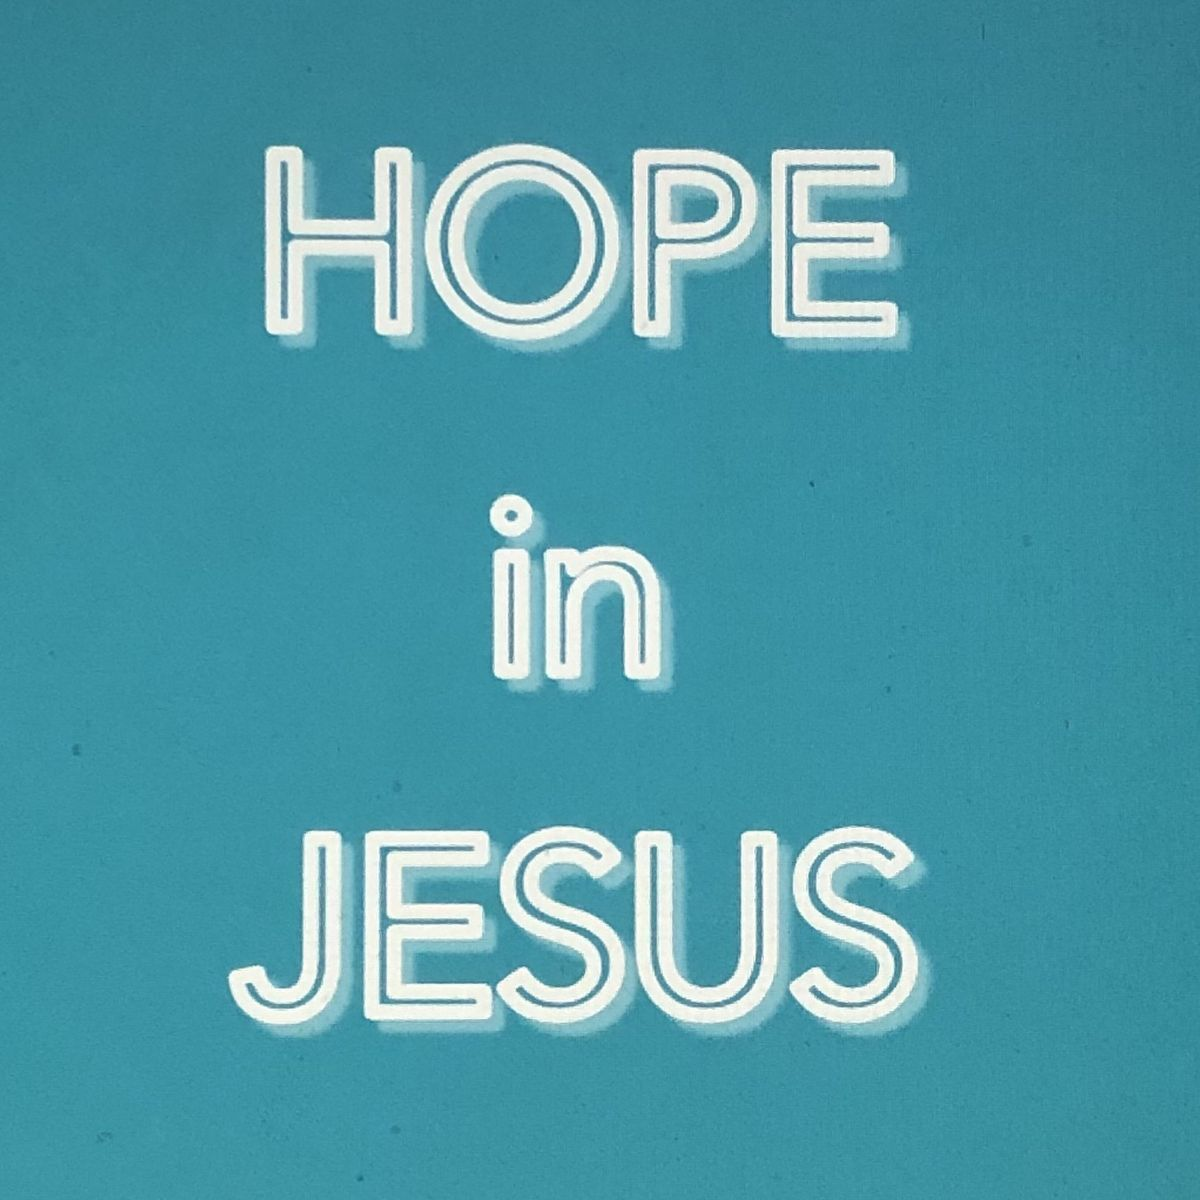 Supreme HOPE is found in Jesus